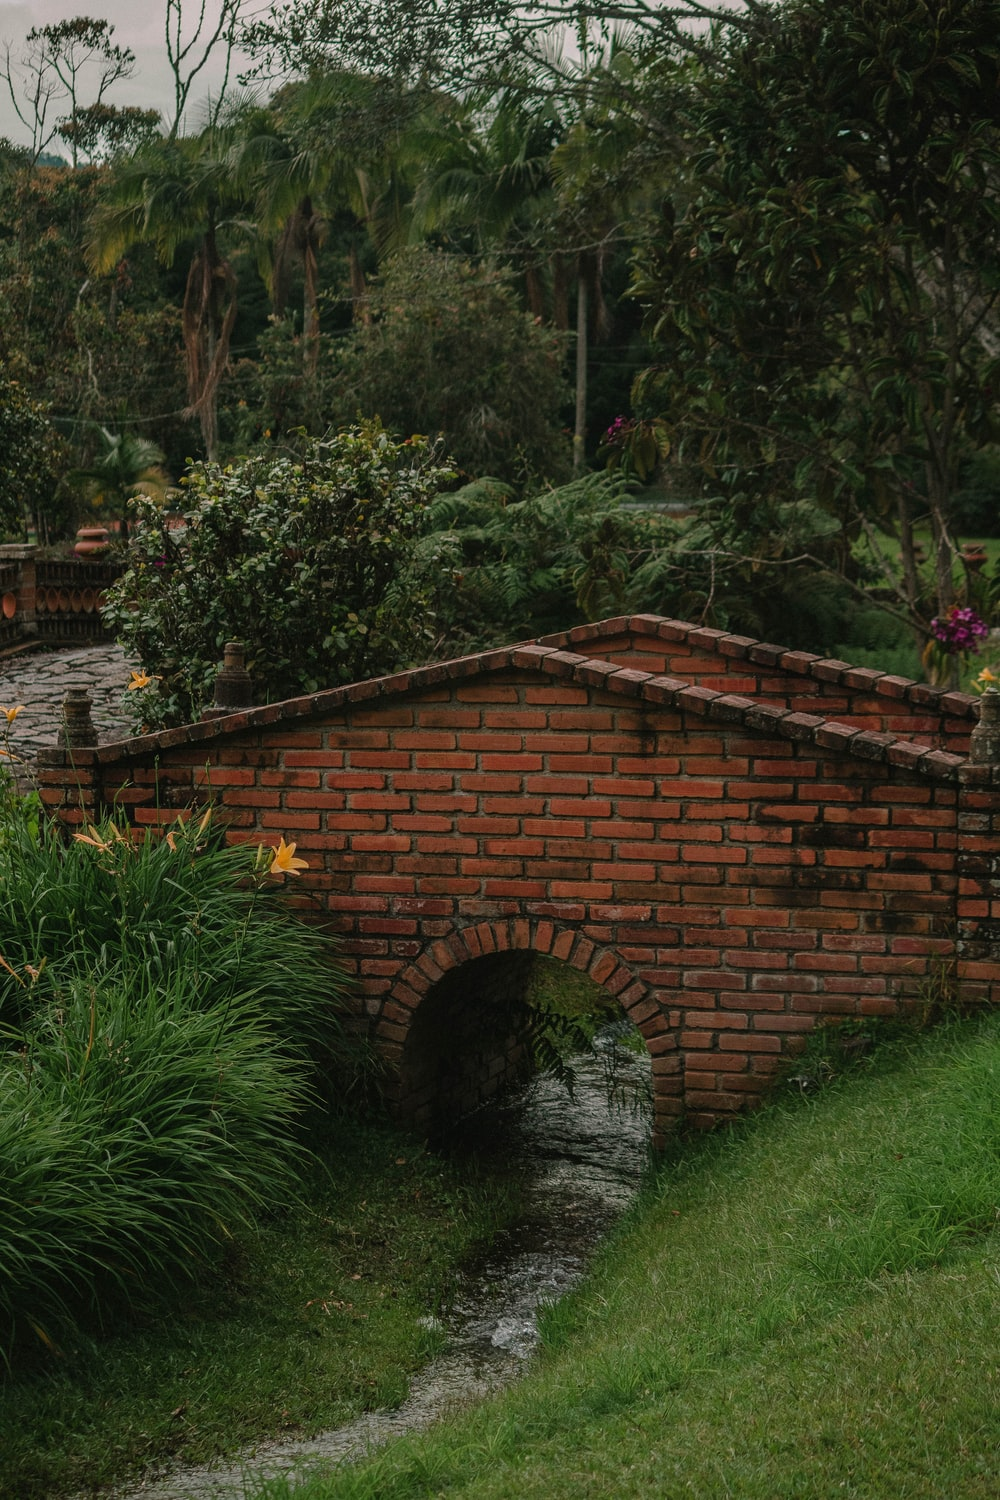 empty brick bridge surrounded by trees during daytime